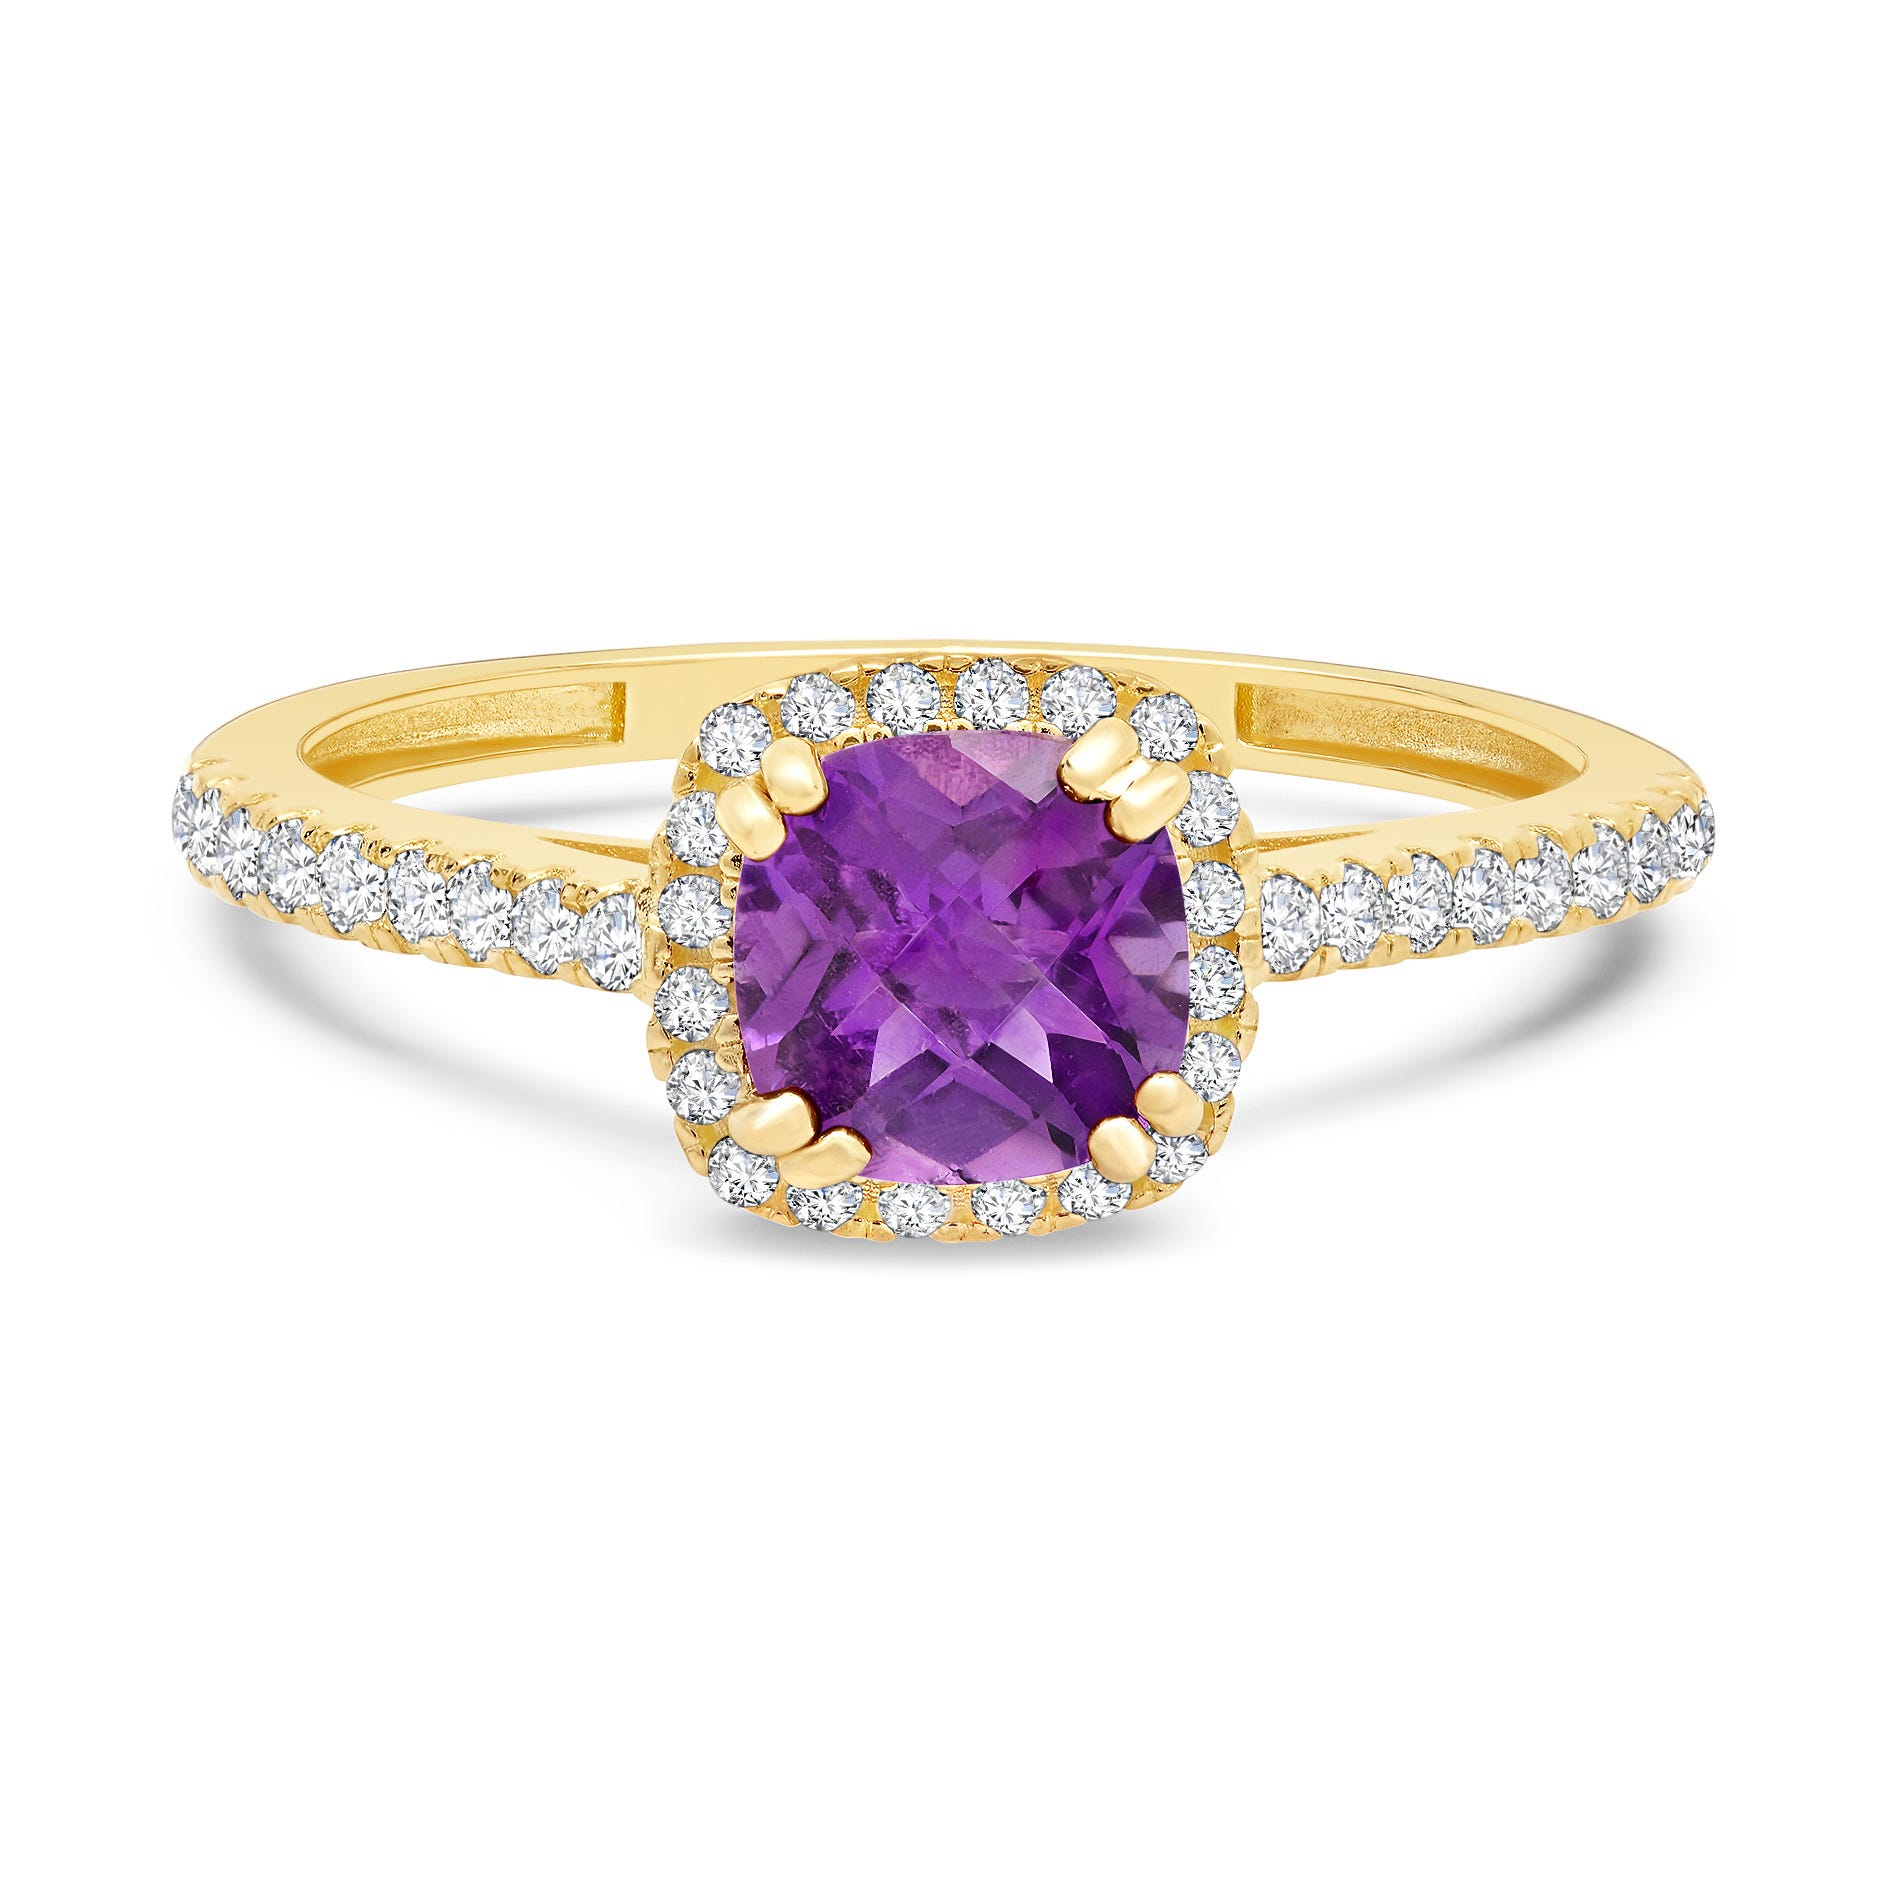 Cushion-Cut Amethyst & Created White Sapphire Ring in 10k Yellow Gold